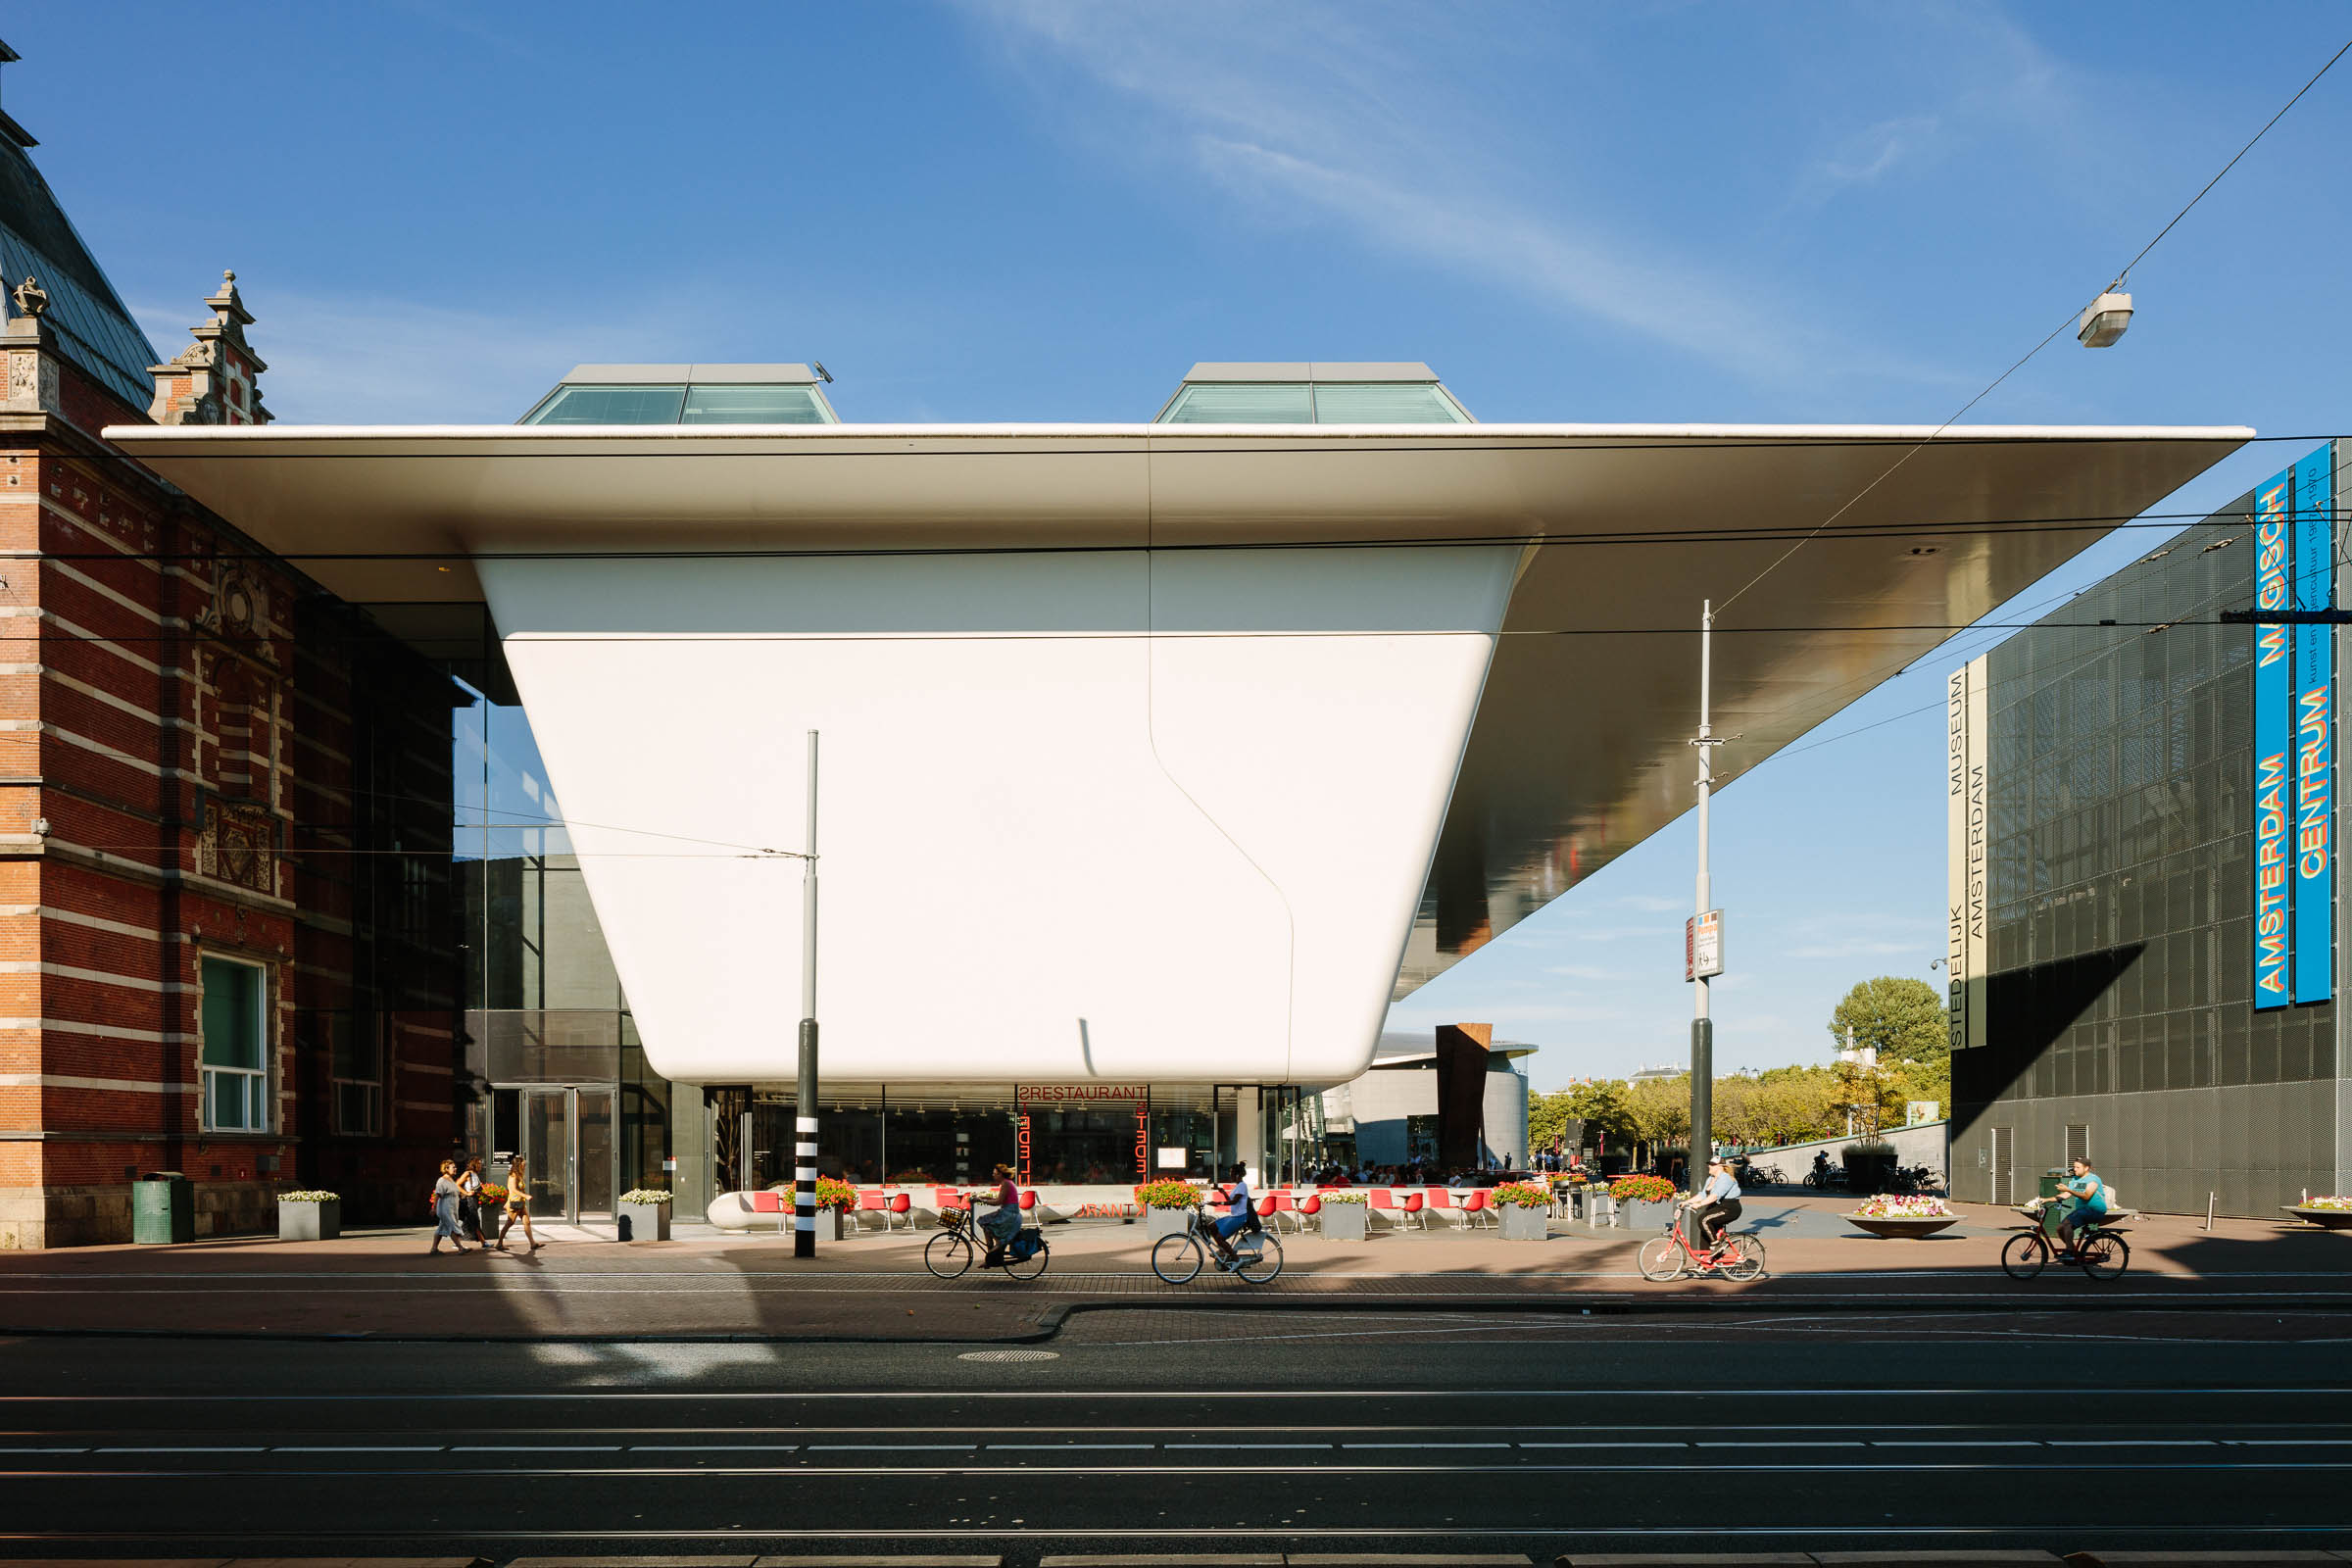 Architectural photography of the project Stedelijk Museum in Amsterdam by Benthem Crouwel Architects, photographer Jakob Börner architectural photographer Hamburg